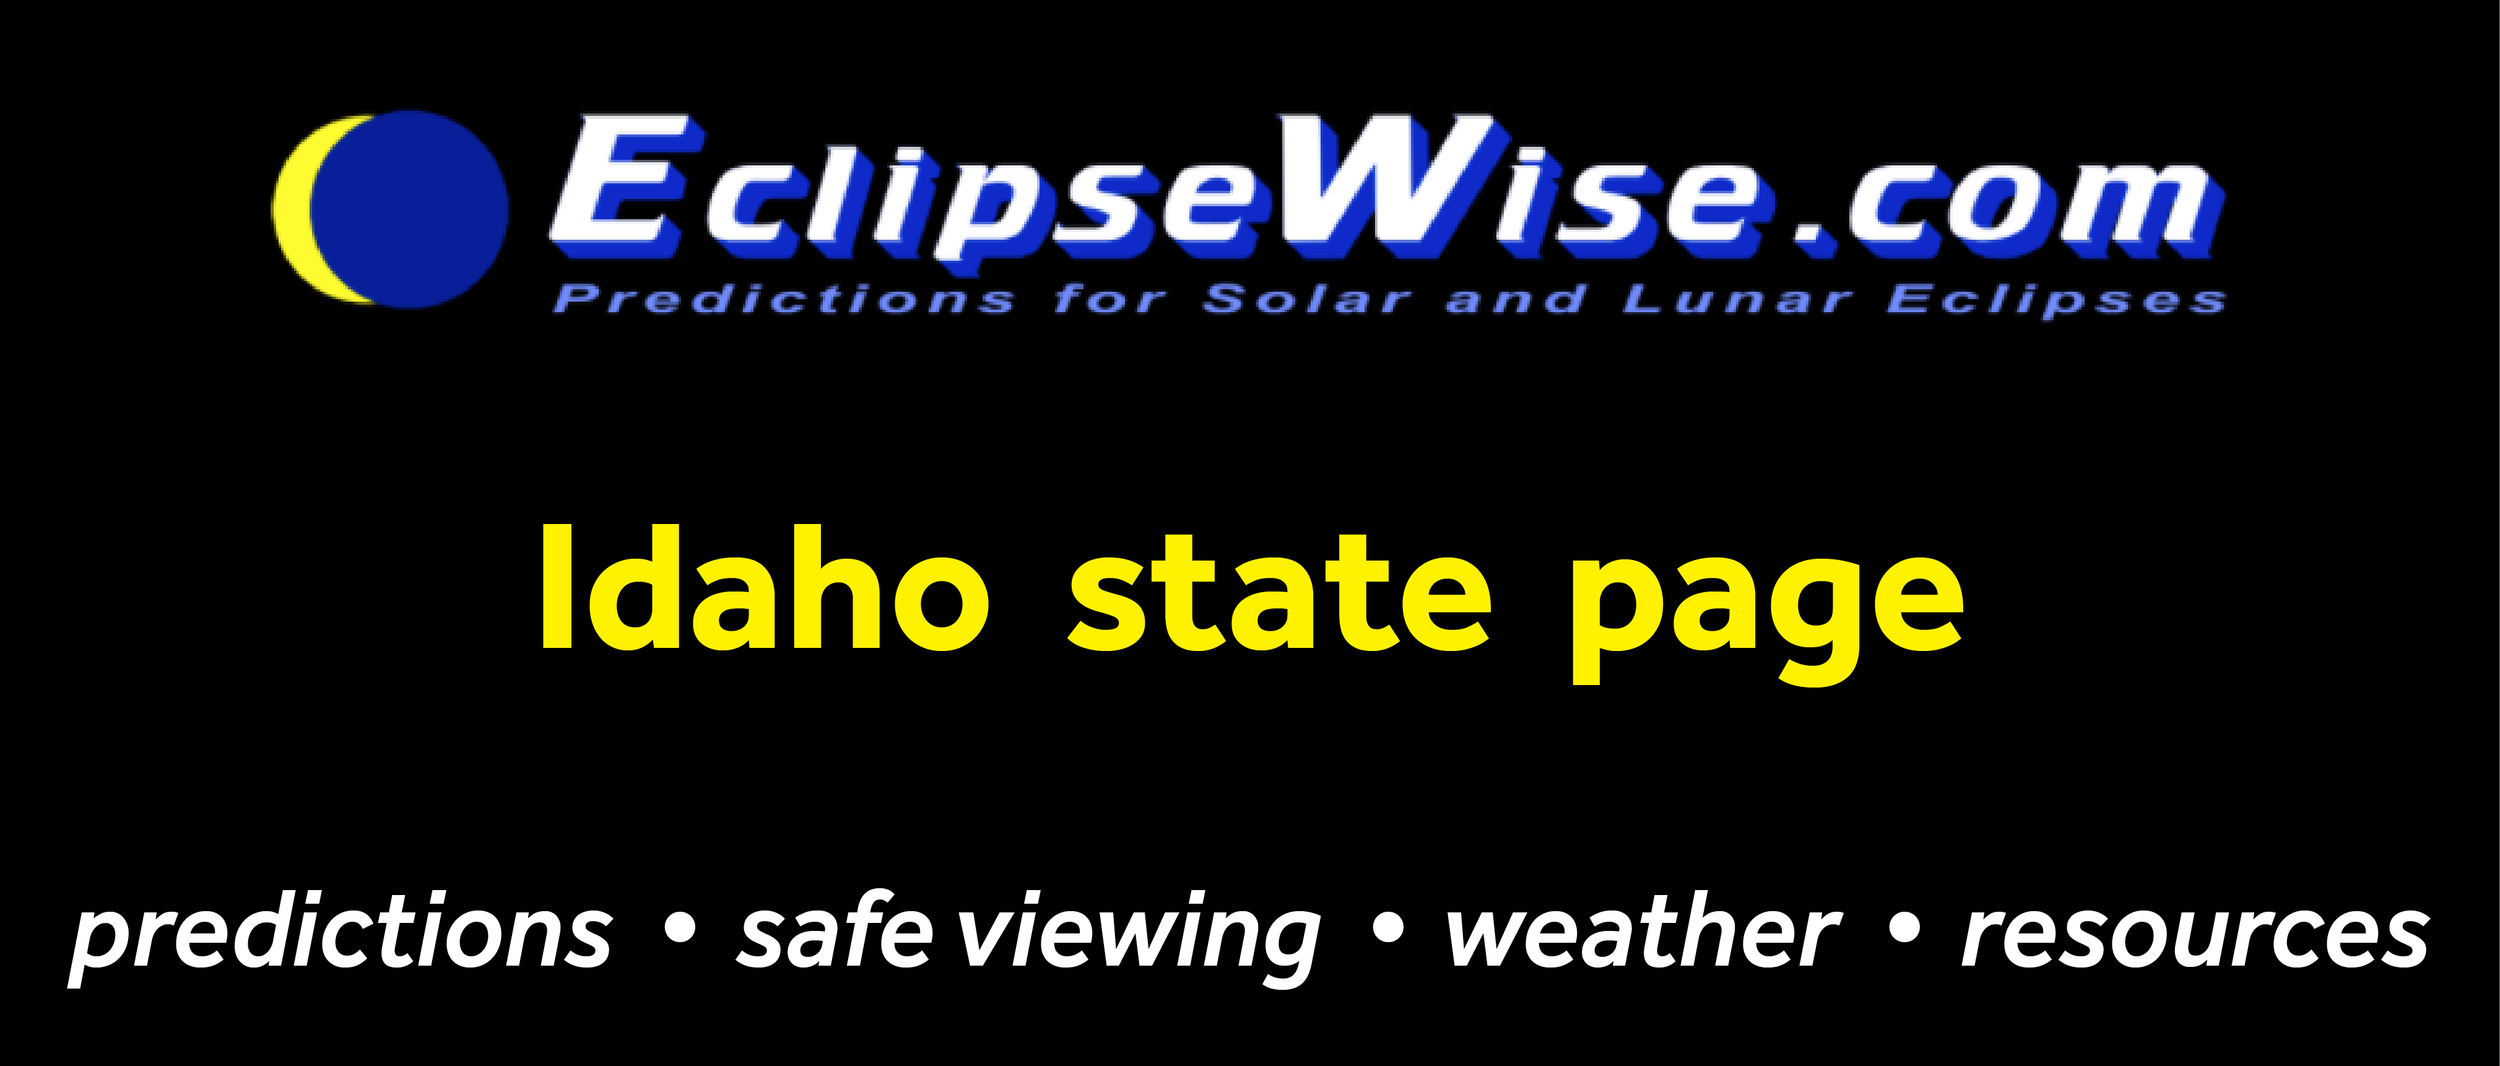 CLICK FOR THE Idaho STATE PAGE ON   ECLIPSEWISE.COM  . THE SITE PROVIDES THE MOST COMPREHENSIVE AND AUTHORITATIVE STATE PAGES FOR THE 2017 ECLIPSE. ECLIPSEWISE.COM IS BUILT BY FRED ESPENAK, RETIRED NASA ASTROPHYSICIST AND THE LEADING EXPERT ON ECLIPSE PREDICTIONS.